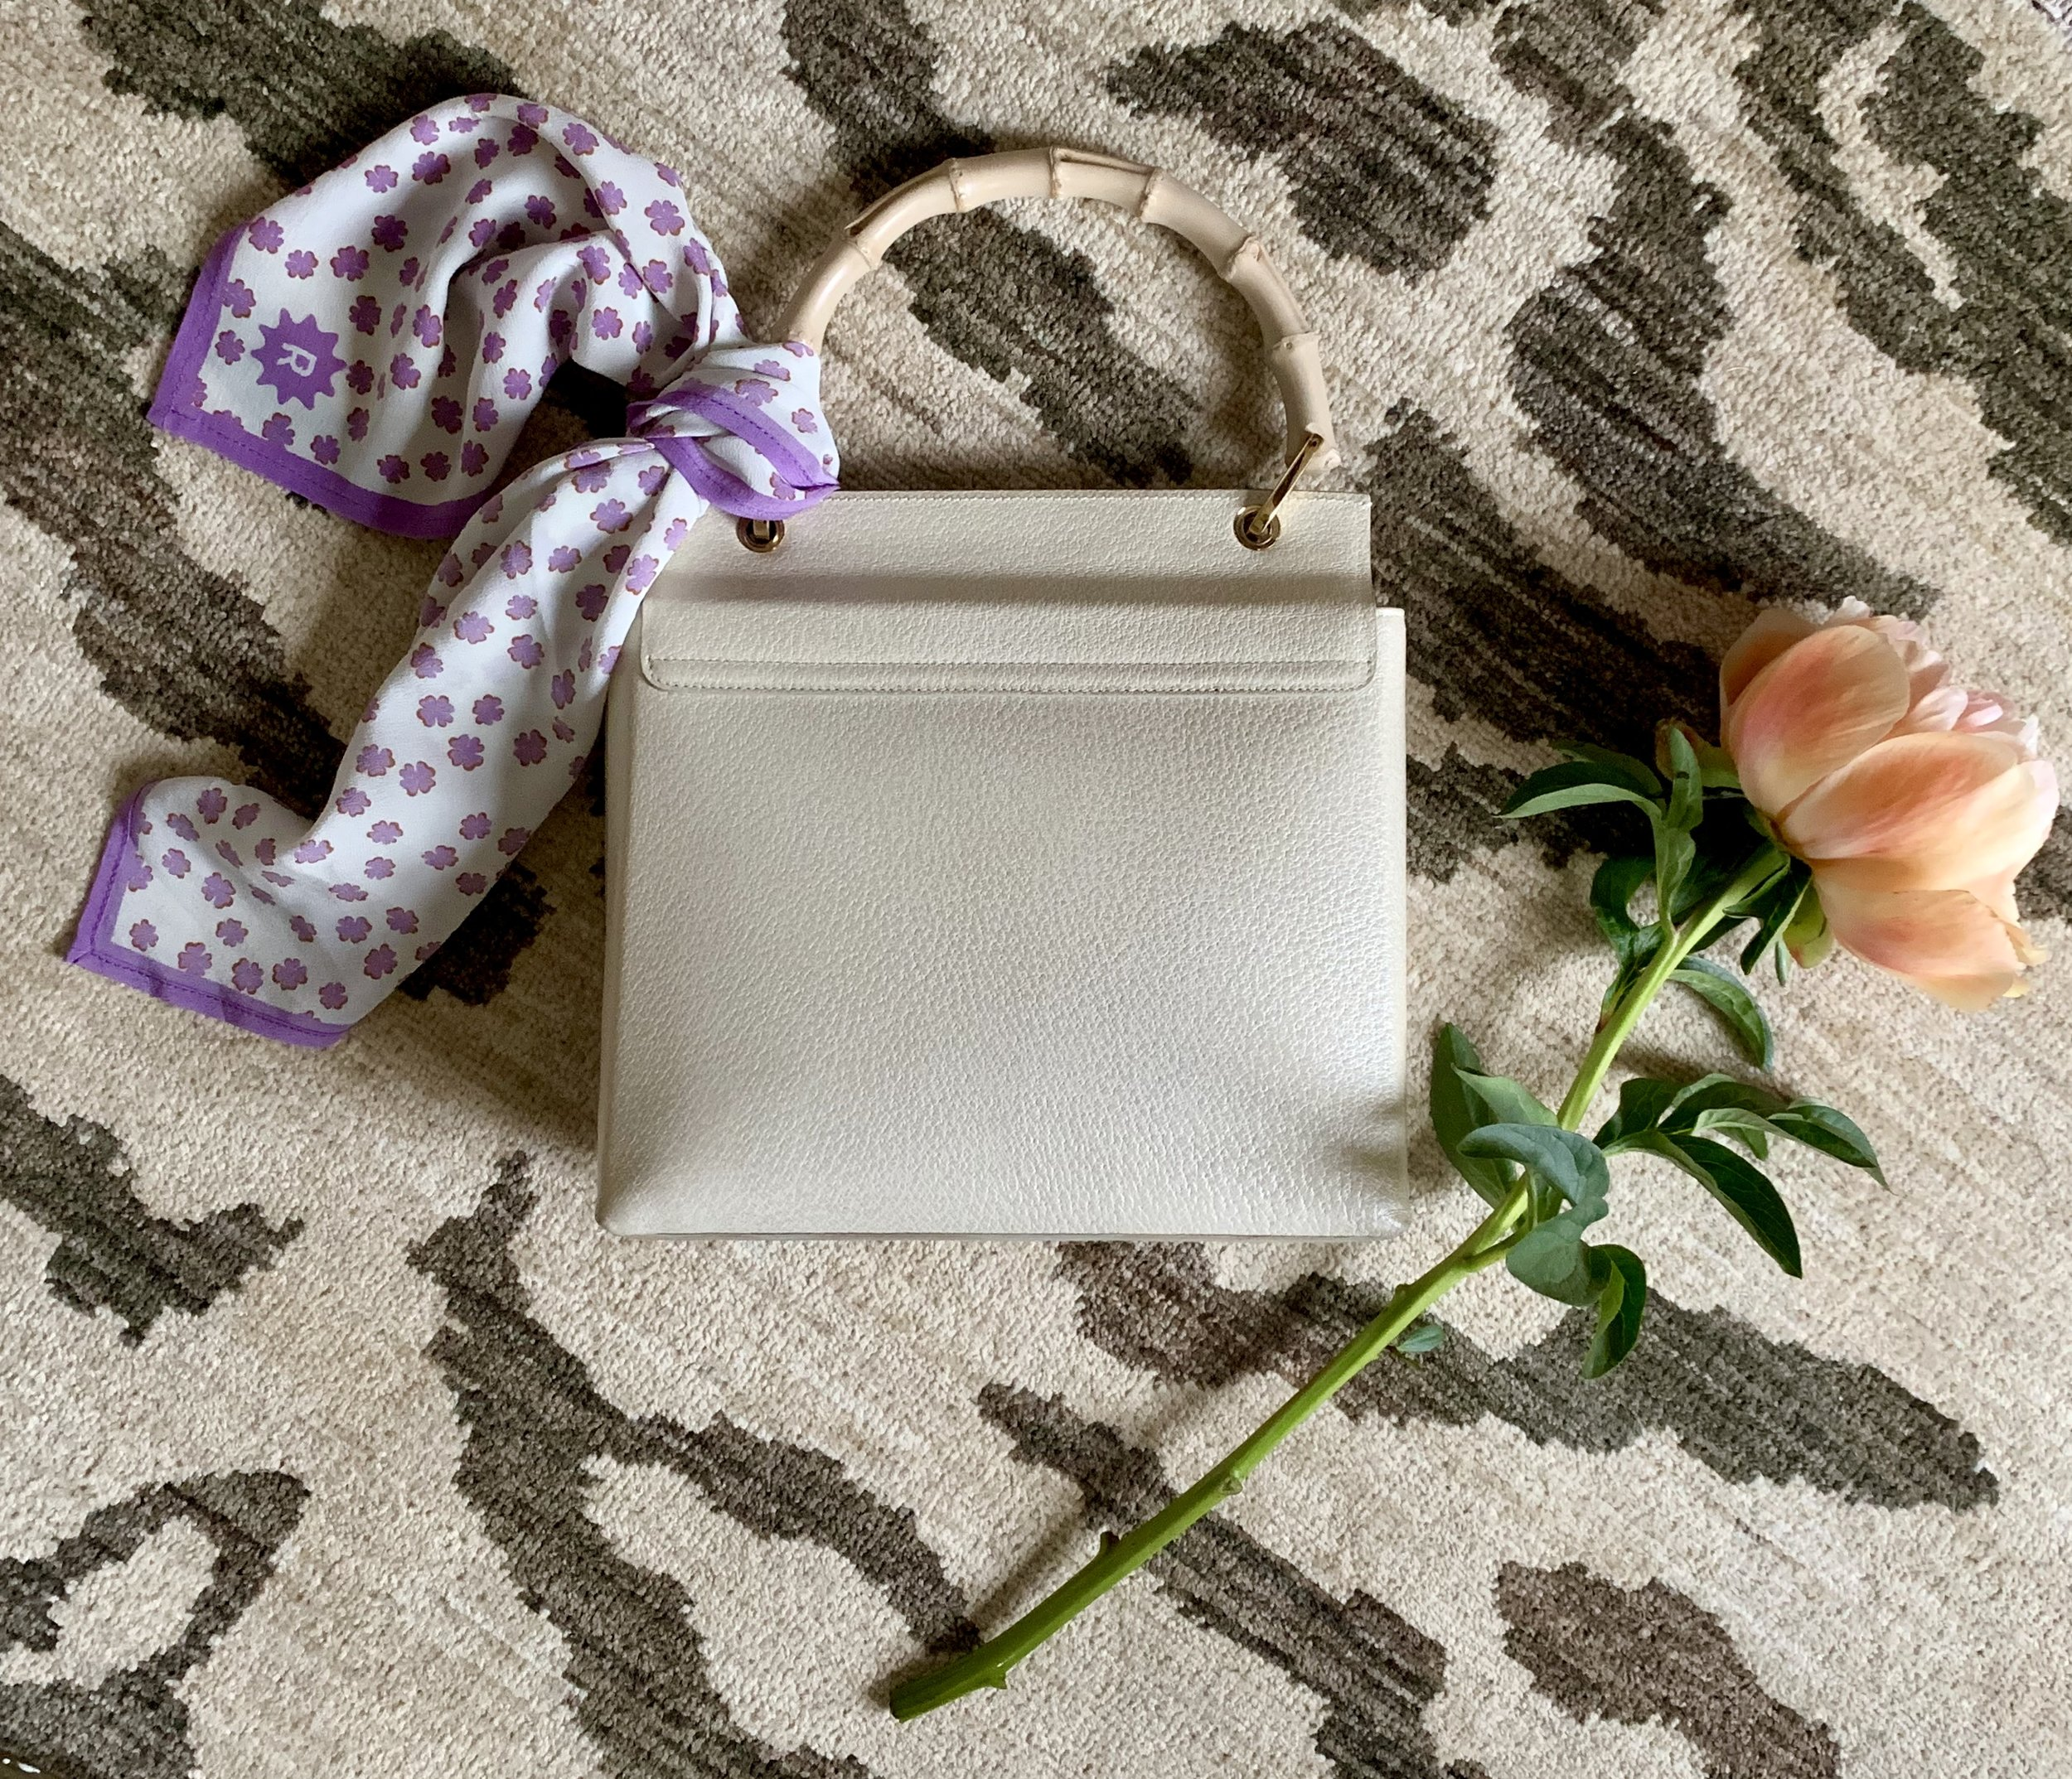 RADISH Lucky Clover silk scarf  and vintage bambo handle handbag from at selection at Laura von Behr Vintage.